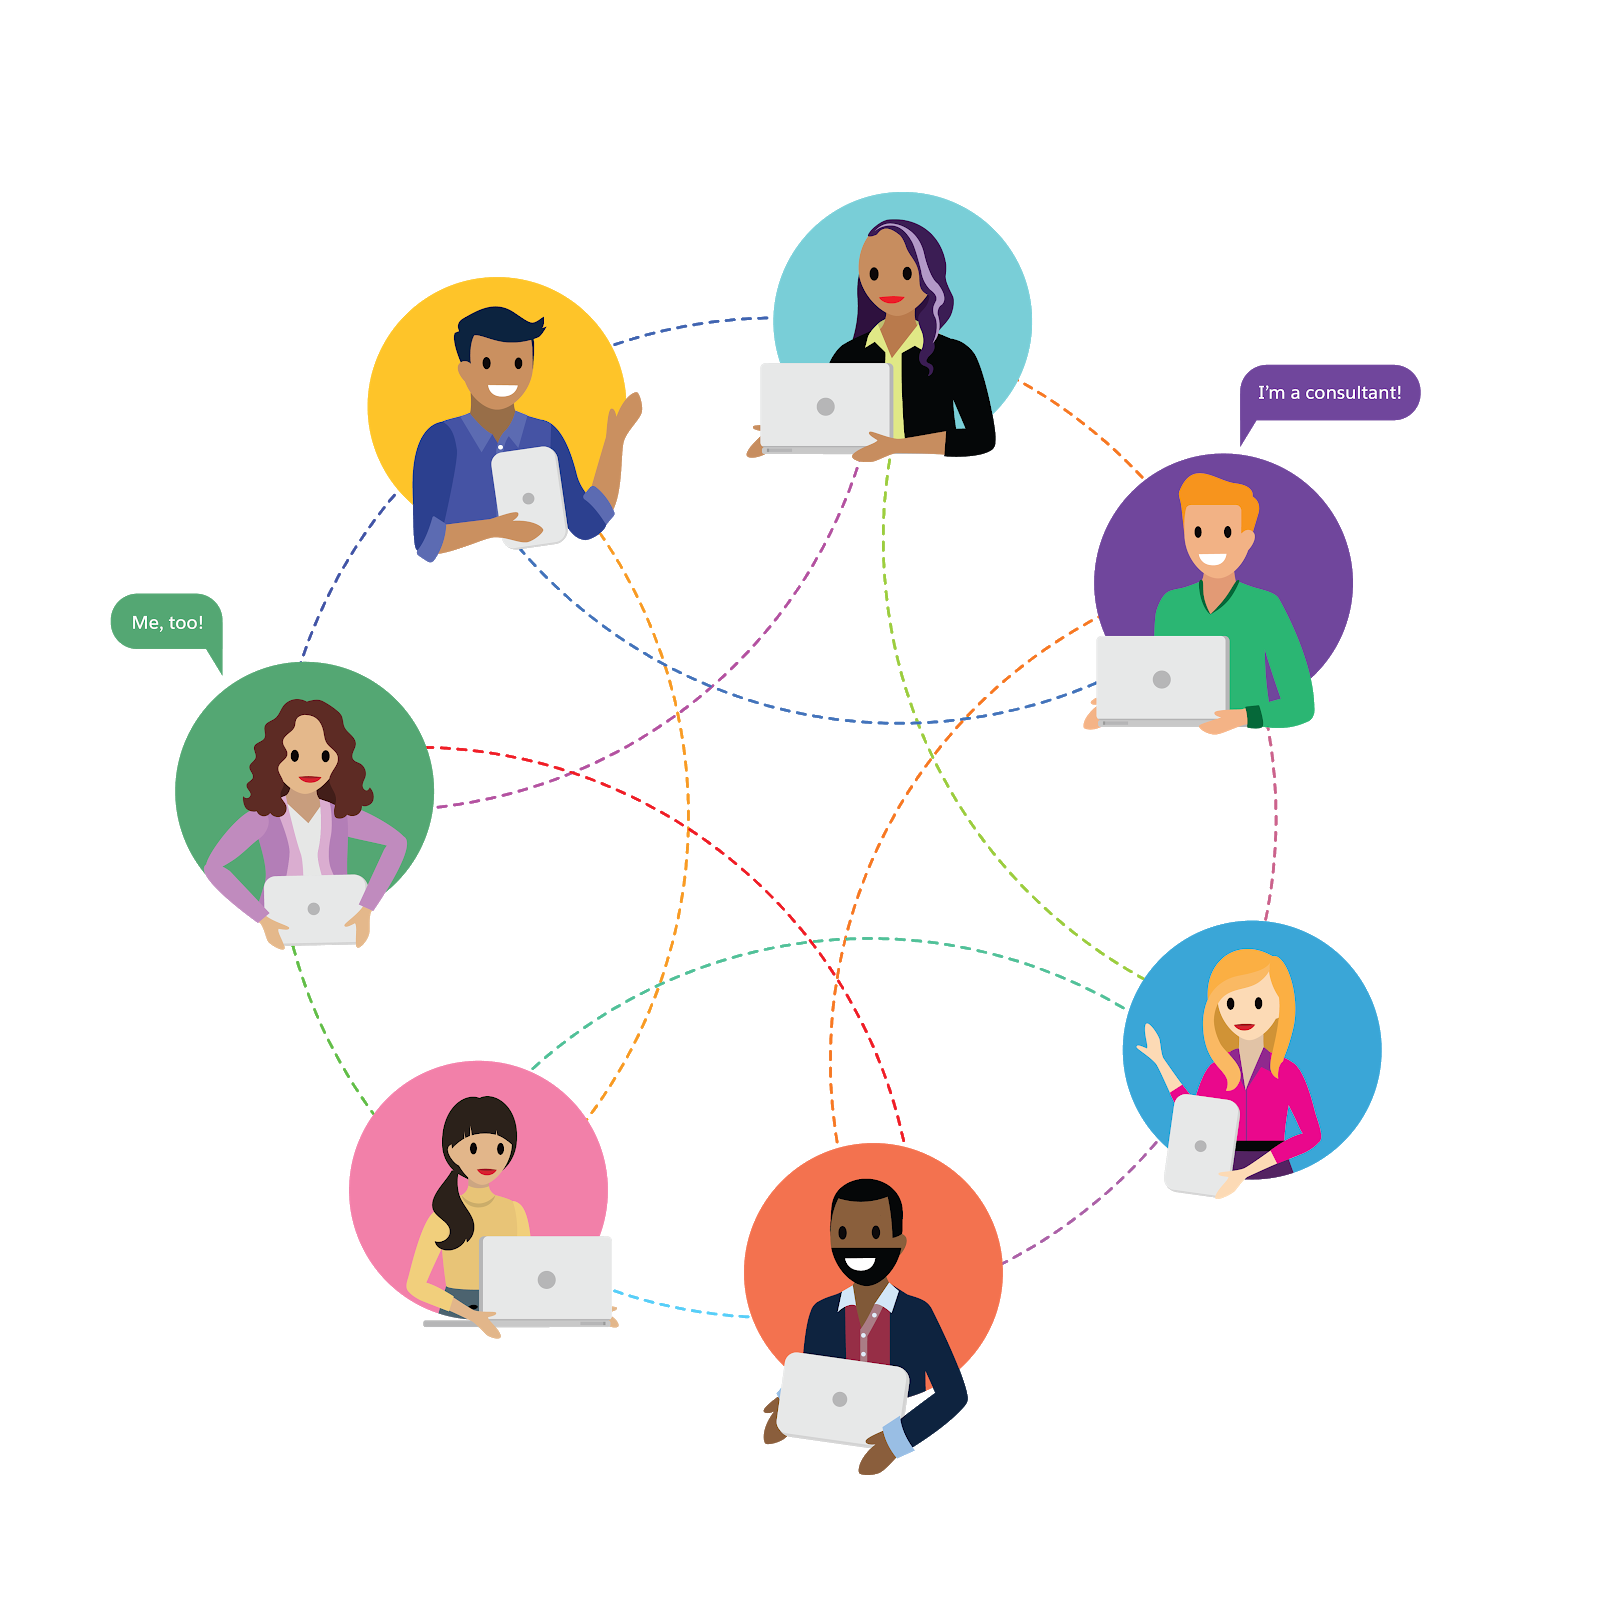 """A circle showing seven people interconnected by a web of dotted lines, with one person saying """"I'm a consultant!"""" and another person saying """"Me too!"""""""